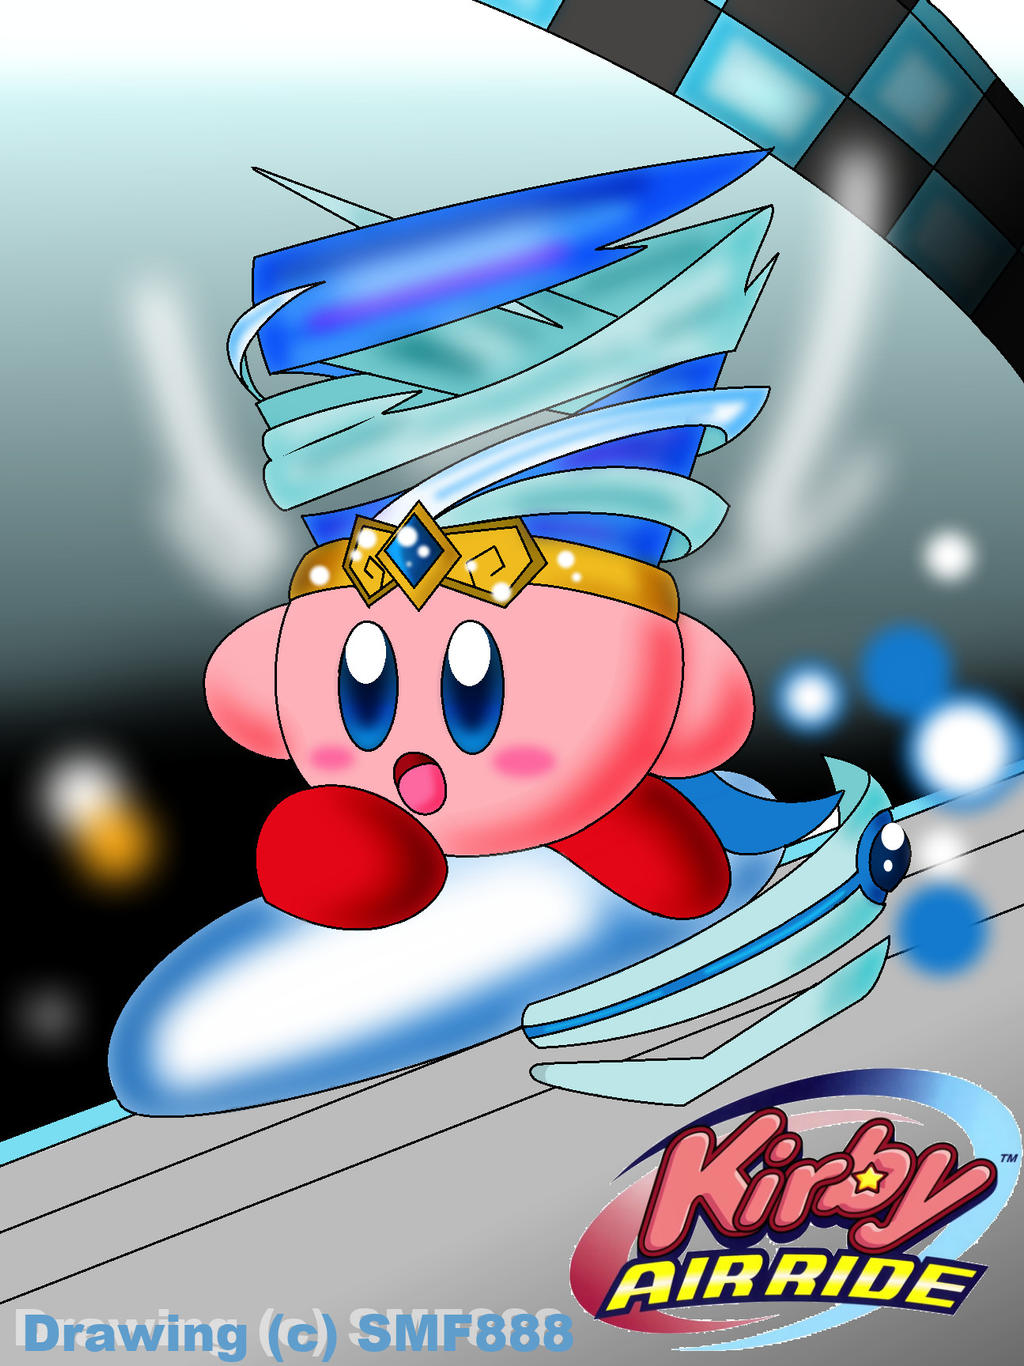 :Kirby: Racing Through by SuperMarioFan888